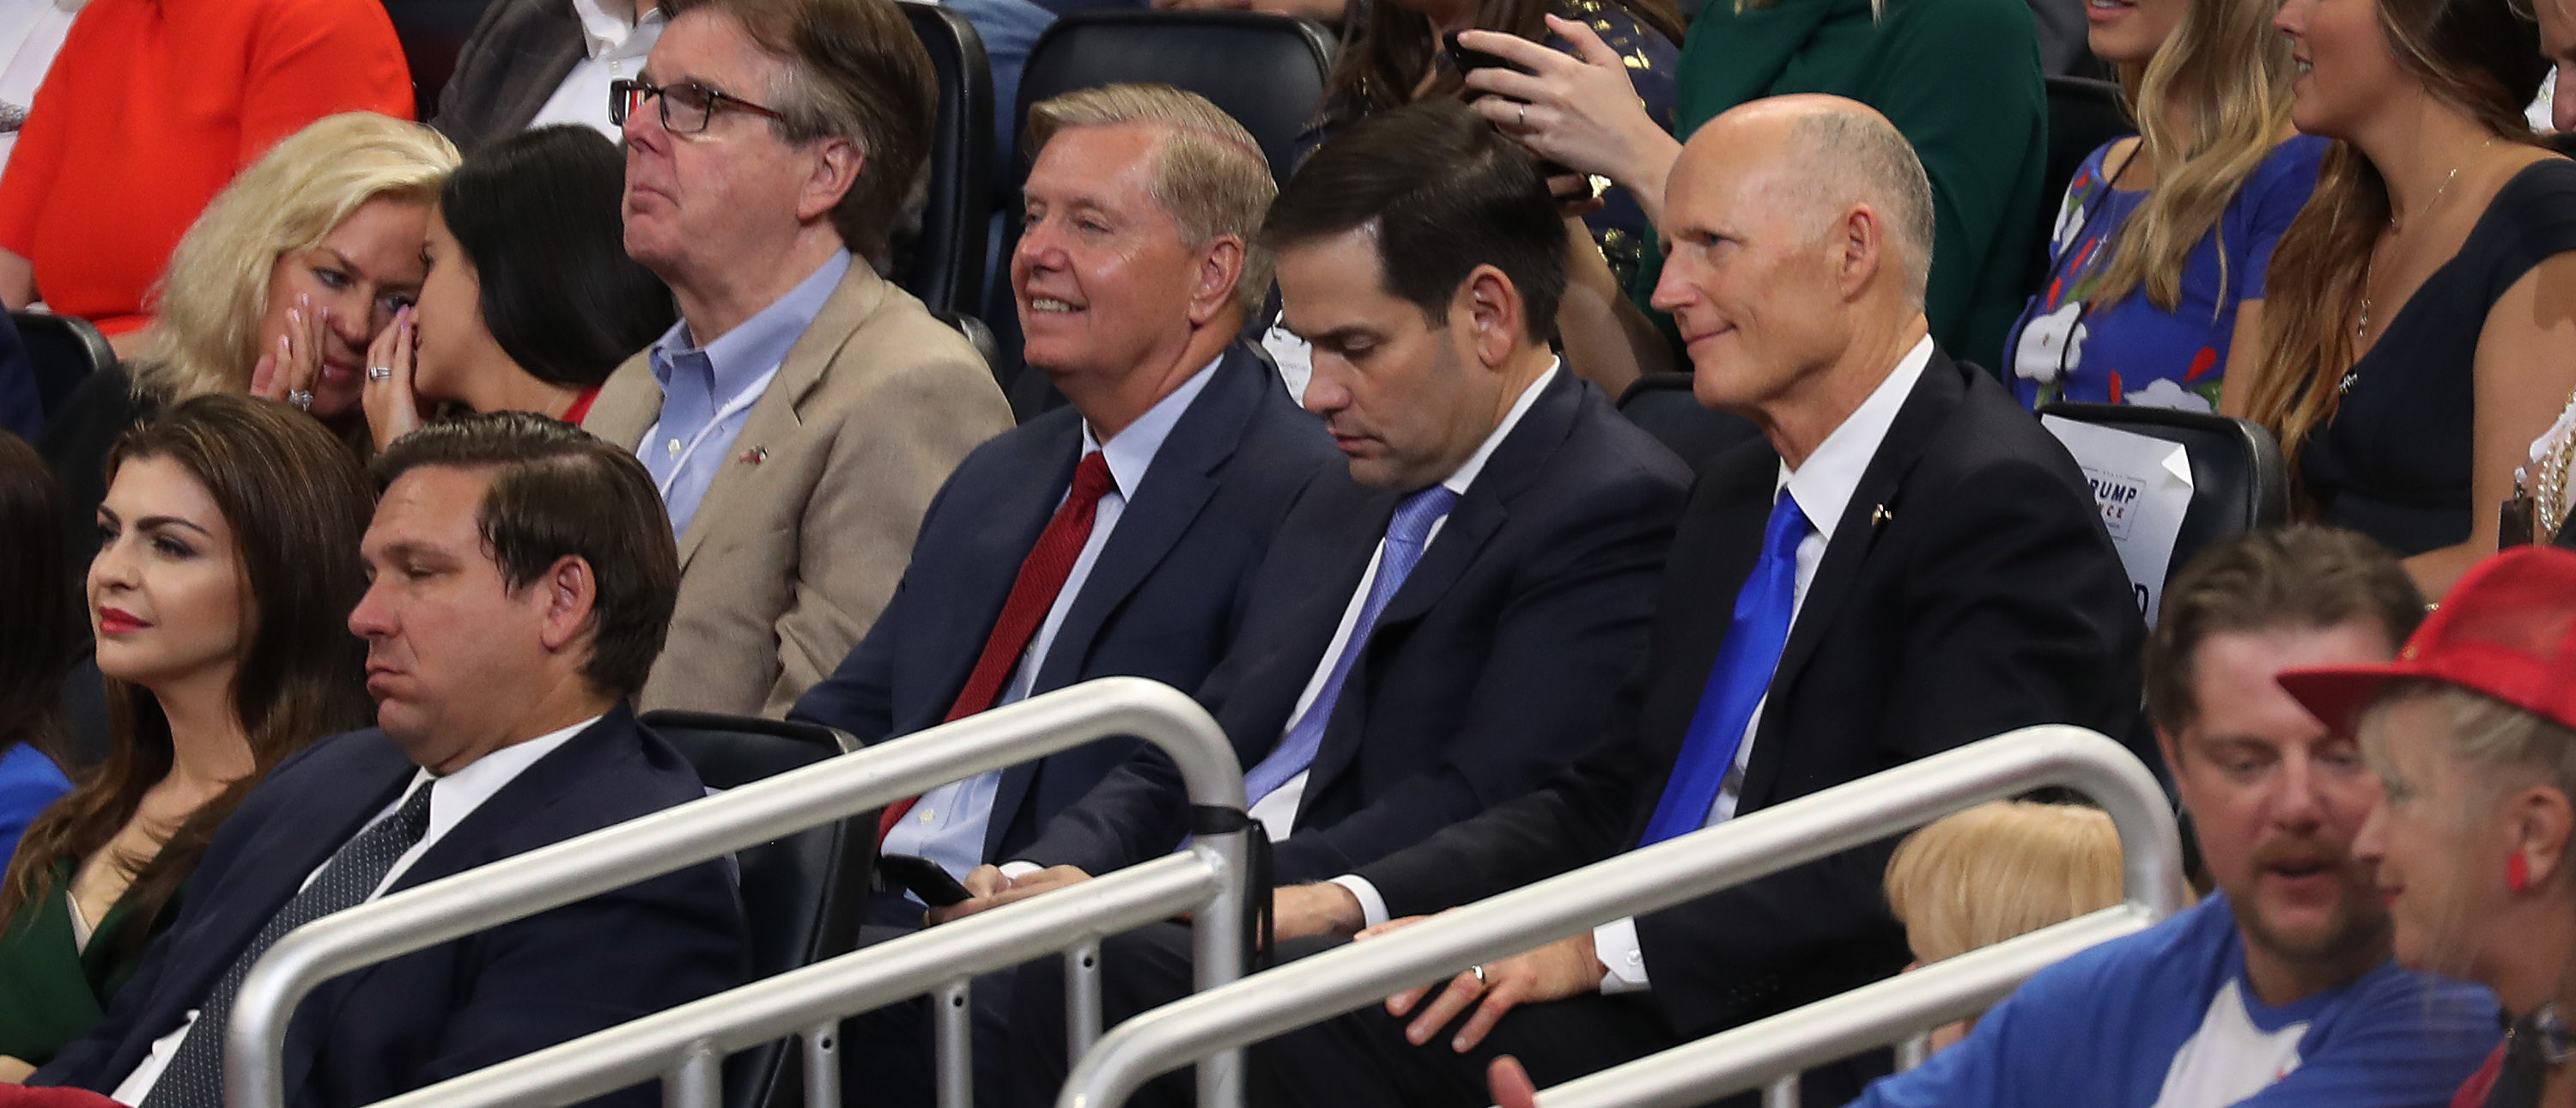 ORLANDO, FLORIDA - JUNE 18: Florida Gov. Ron DeSantis (front row) Lindsey Graham (R-SC), Sen. Marco Rubio (R-FL) and Sen. Rick Scott (R-FL) listen as U.S. President Donald Trump speaks during his rally where he announced his candidacy for a second presidential term at the Amway Center on June 18, 2019 in Orlando, Florida. President Trump is set to run against a wide open Democratic field of candidates. (Photo by Joe Raedle/Getty Images)